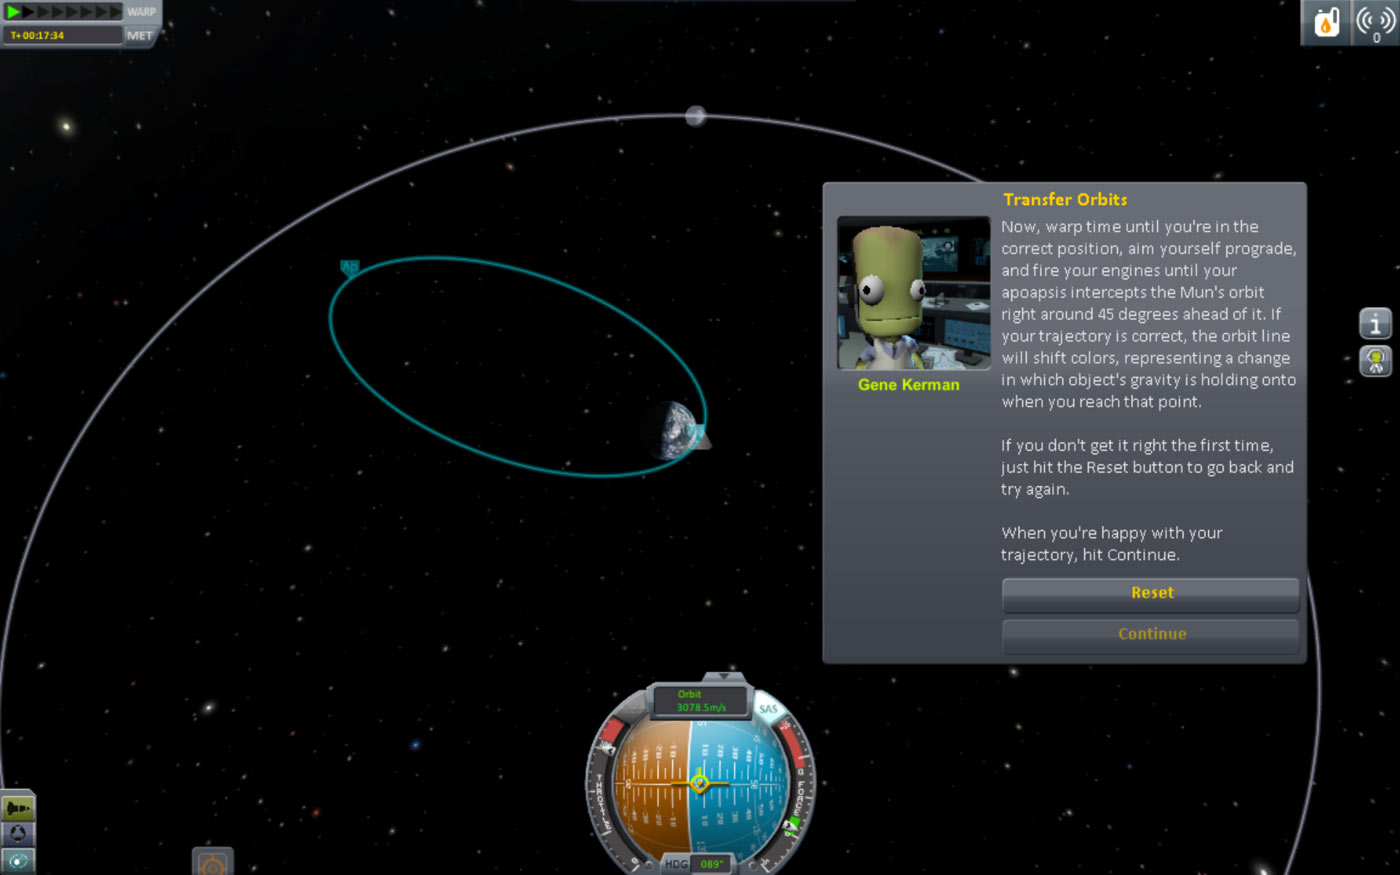 Kerbal Space Program Orbits Transfer - Pics about space